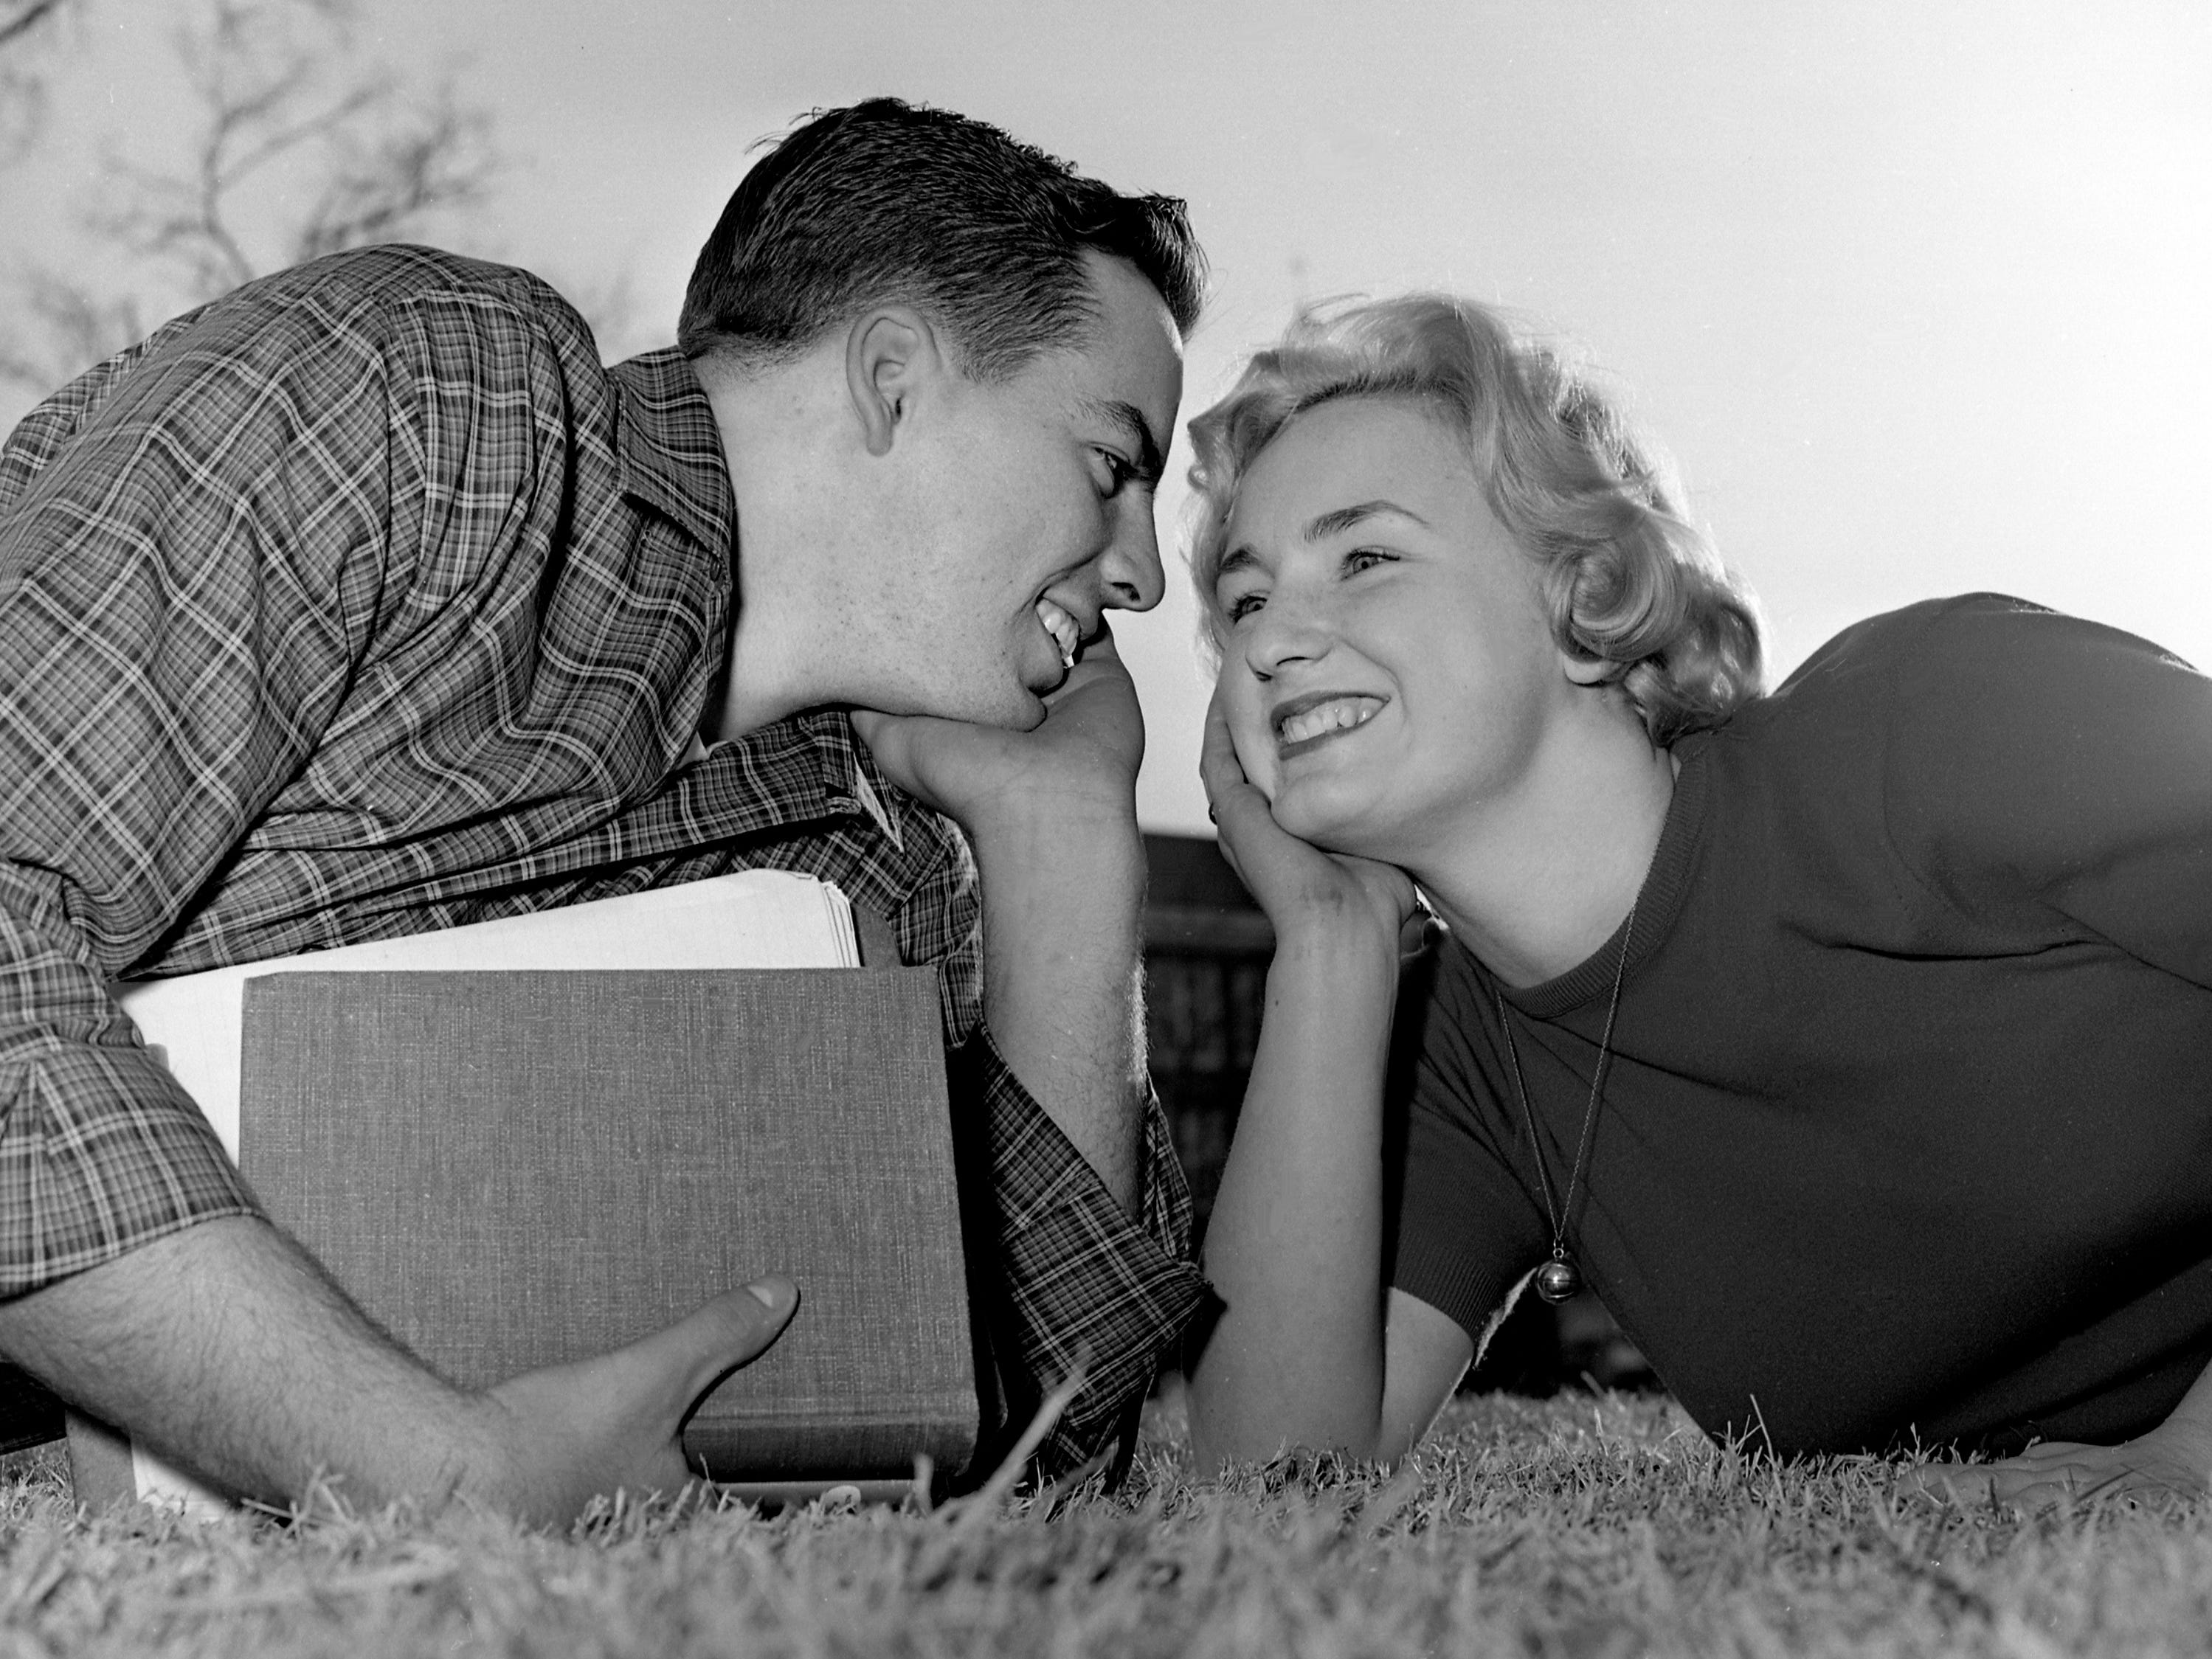 A boy, a girl, a spring February day and Valentine are the winning combination for Eddie Voekel, 18, left, and his steady, June Morton, 18, as the West High School seniors forget books for more romantic musings Feb. 13, 1961.